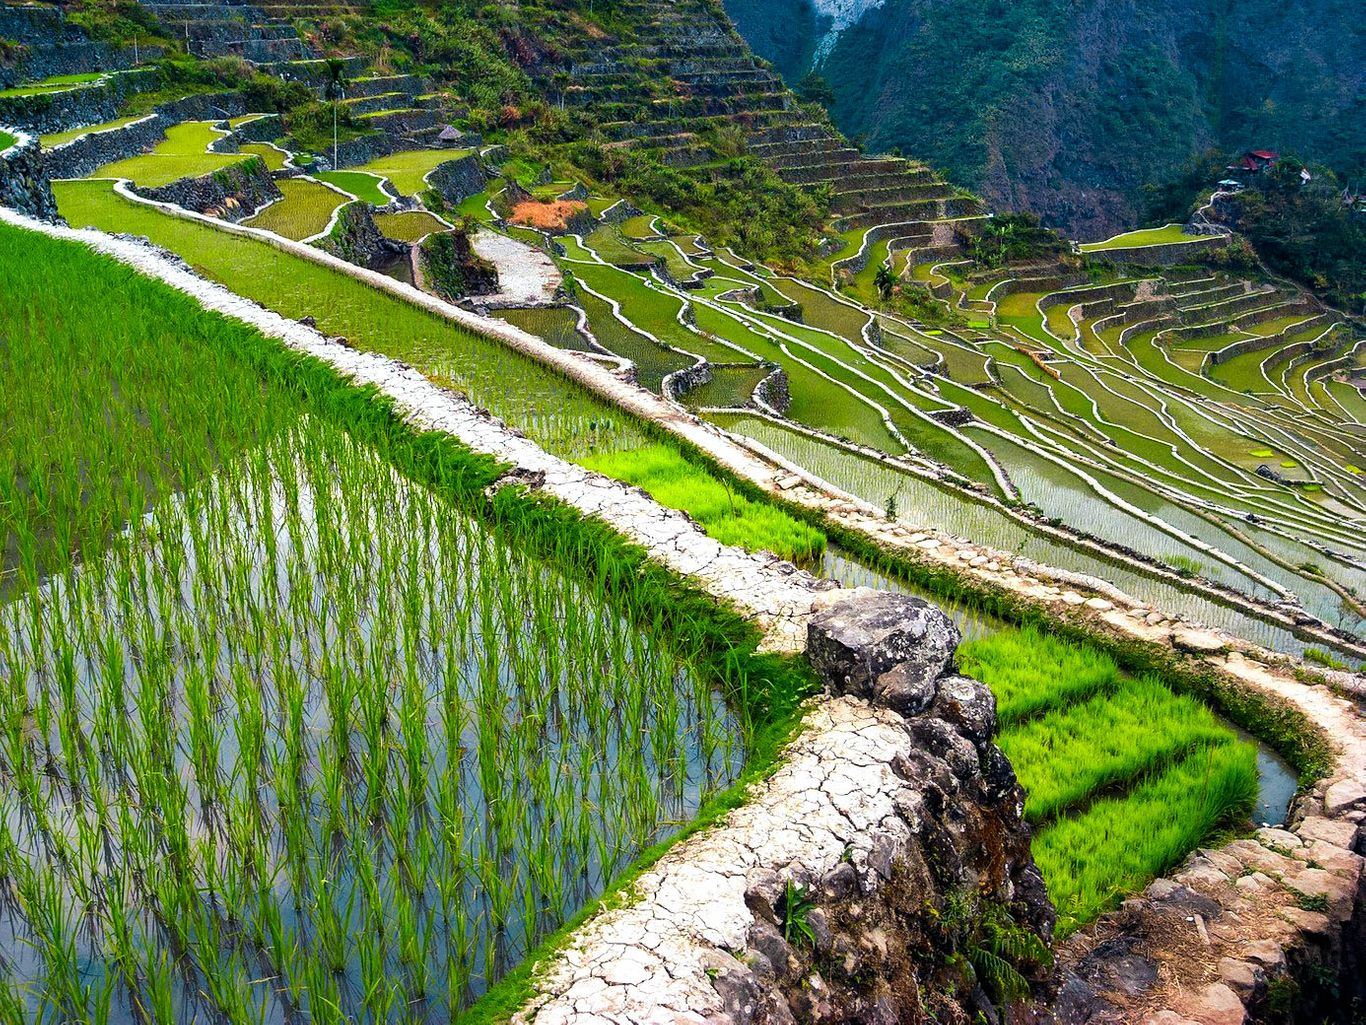 Green rice plants grow on terraced paddy fields carved on the slope of a steep mountain, forming part of the Rice Terraces of the Philippine Cordilleras, one of the UNESCO World Heritage Sites in the Philippines